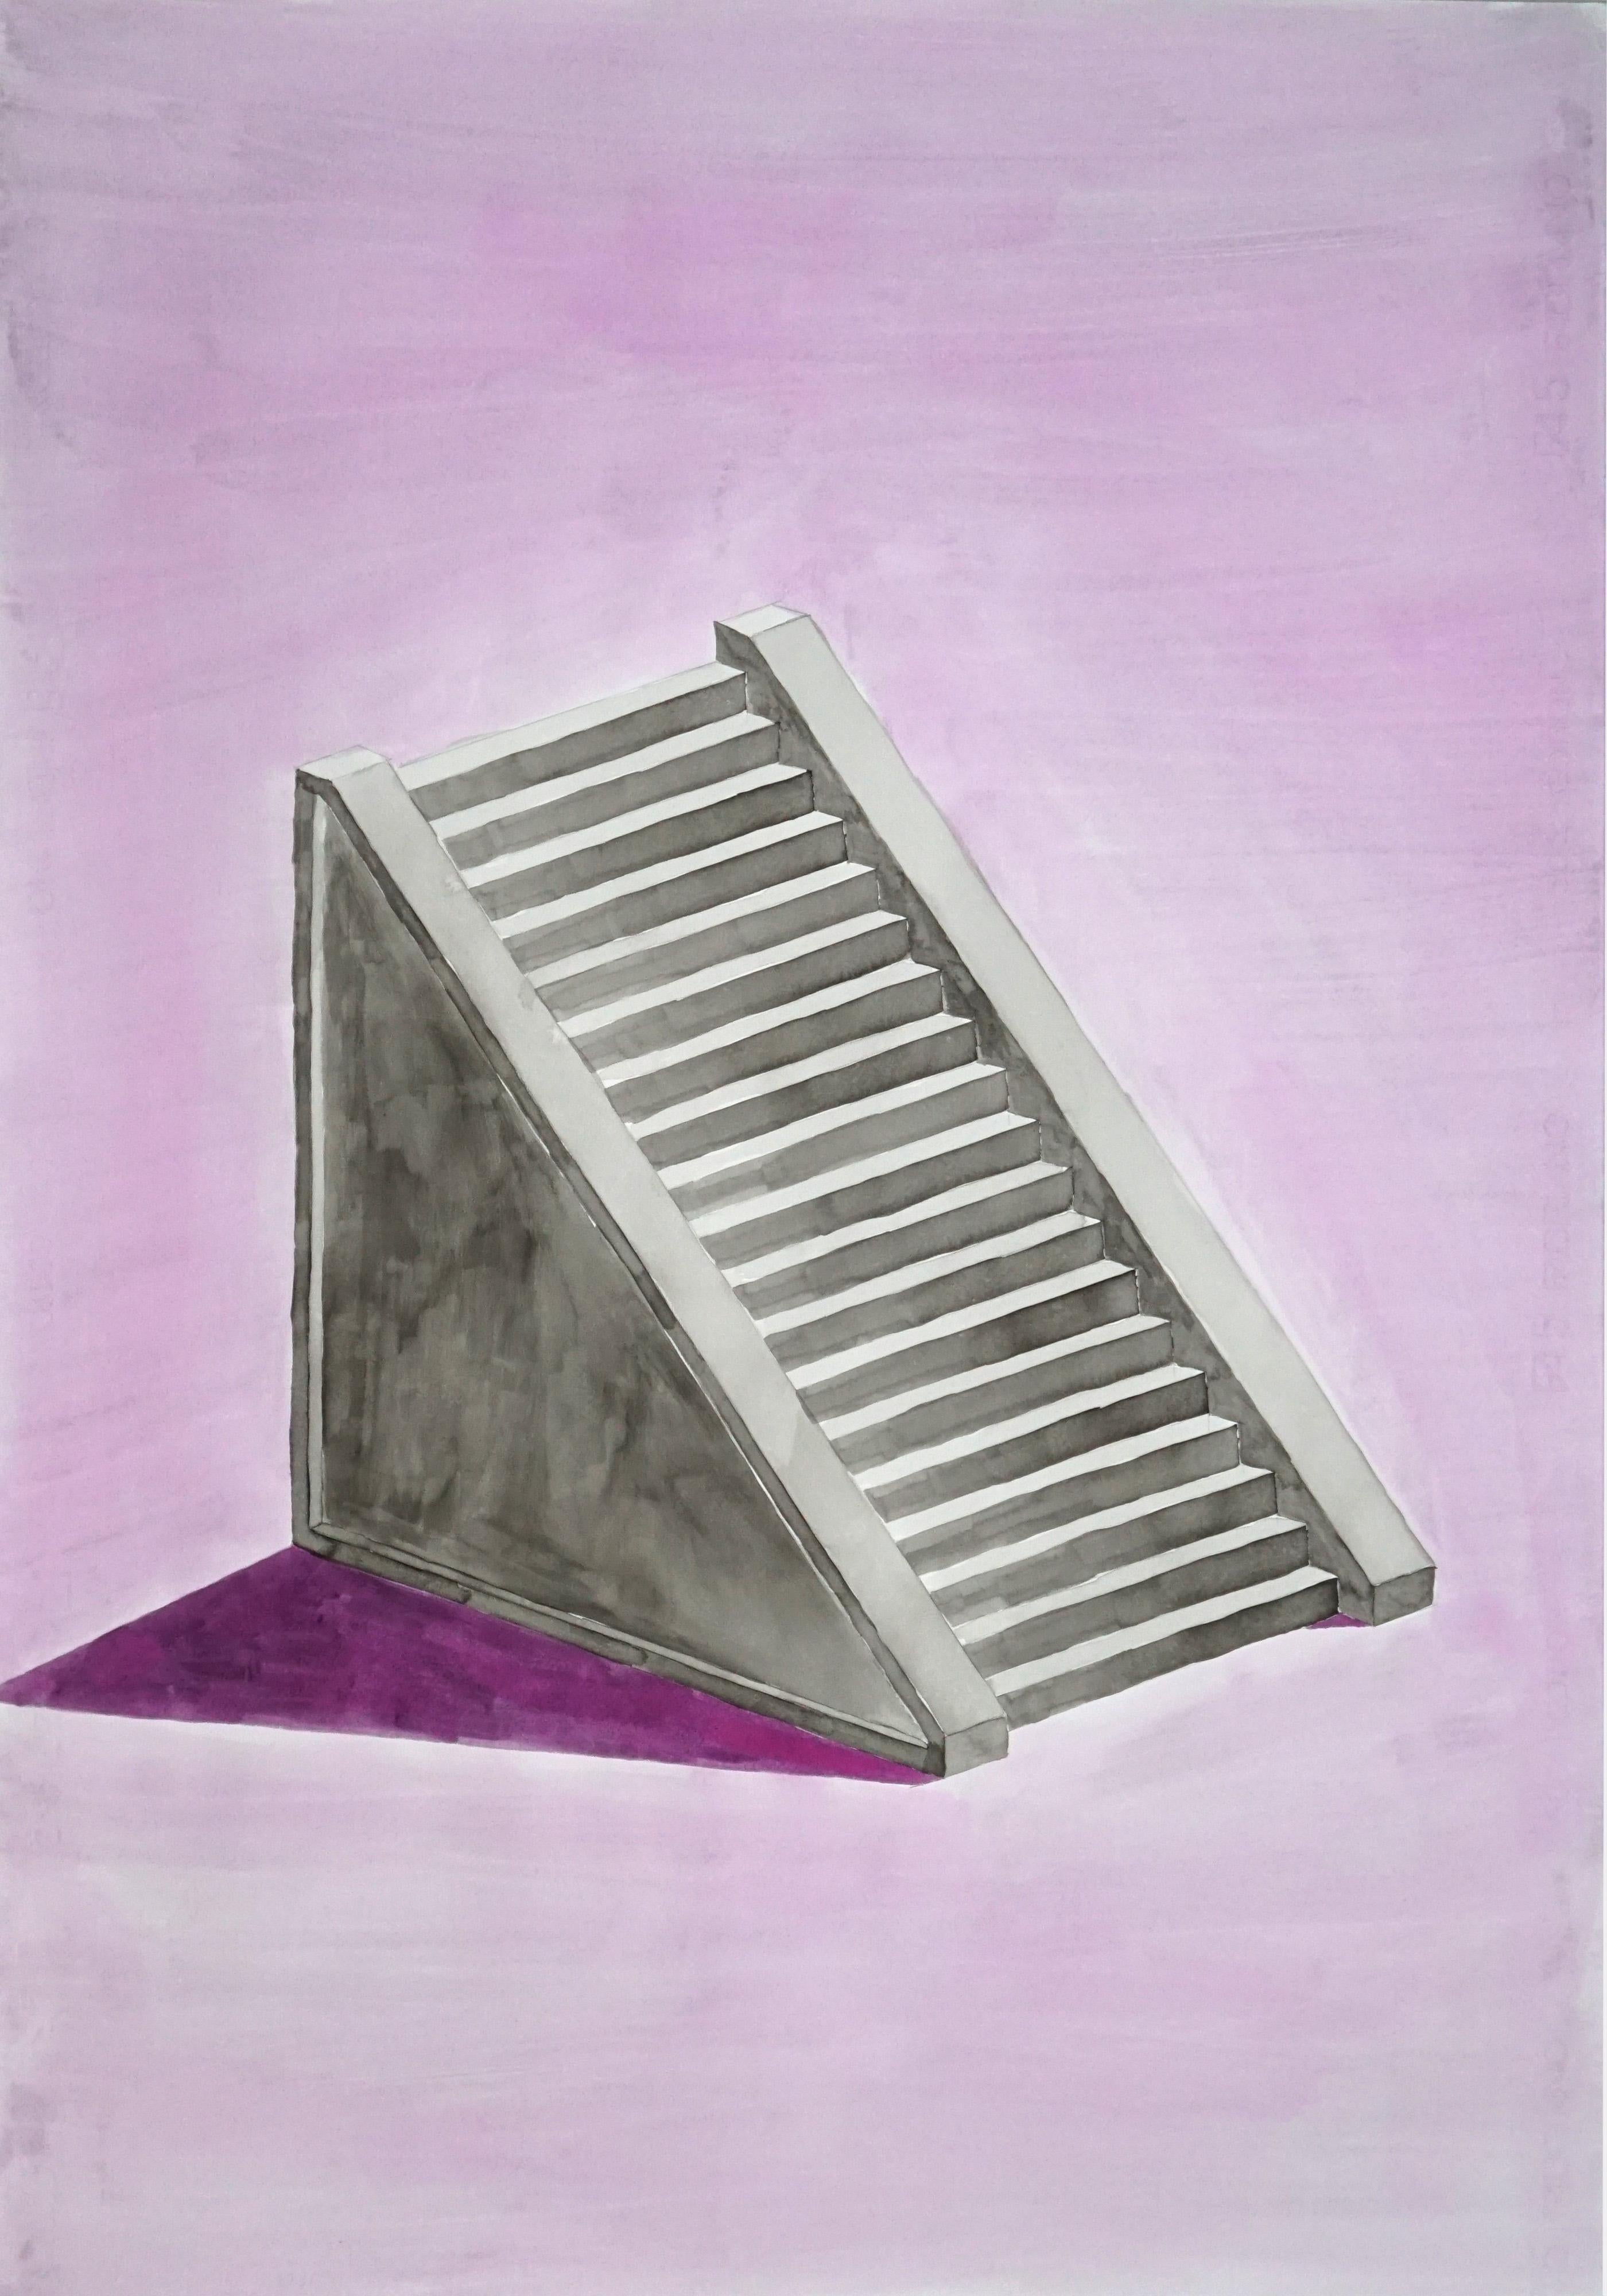 Lilac Mayan Staircase, Minimal Architecture Watercolor on Paper, Gray 100x70 cm